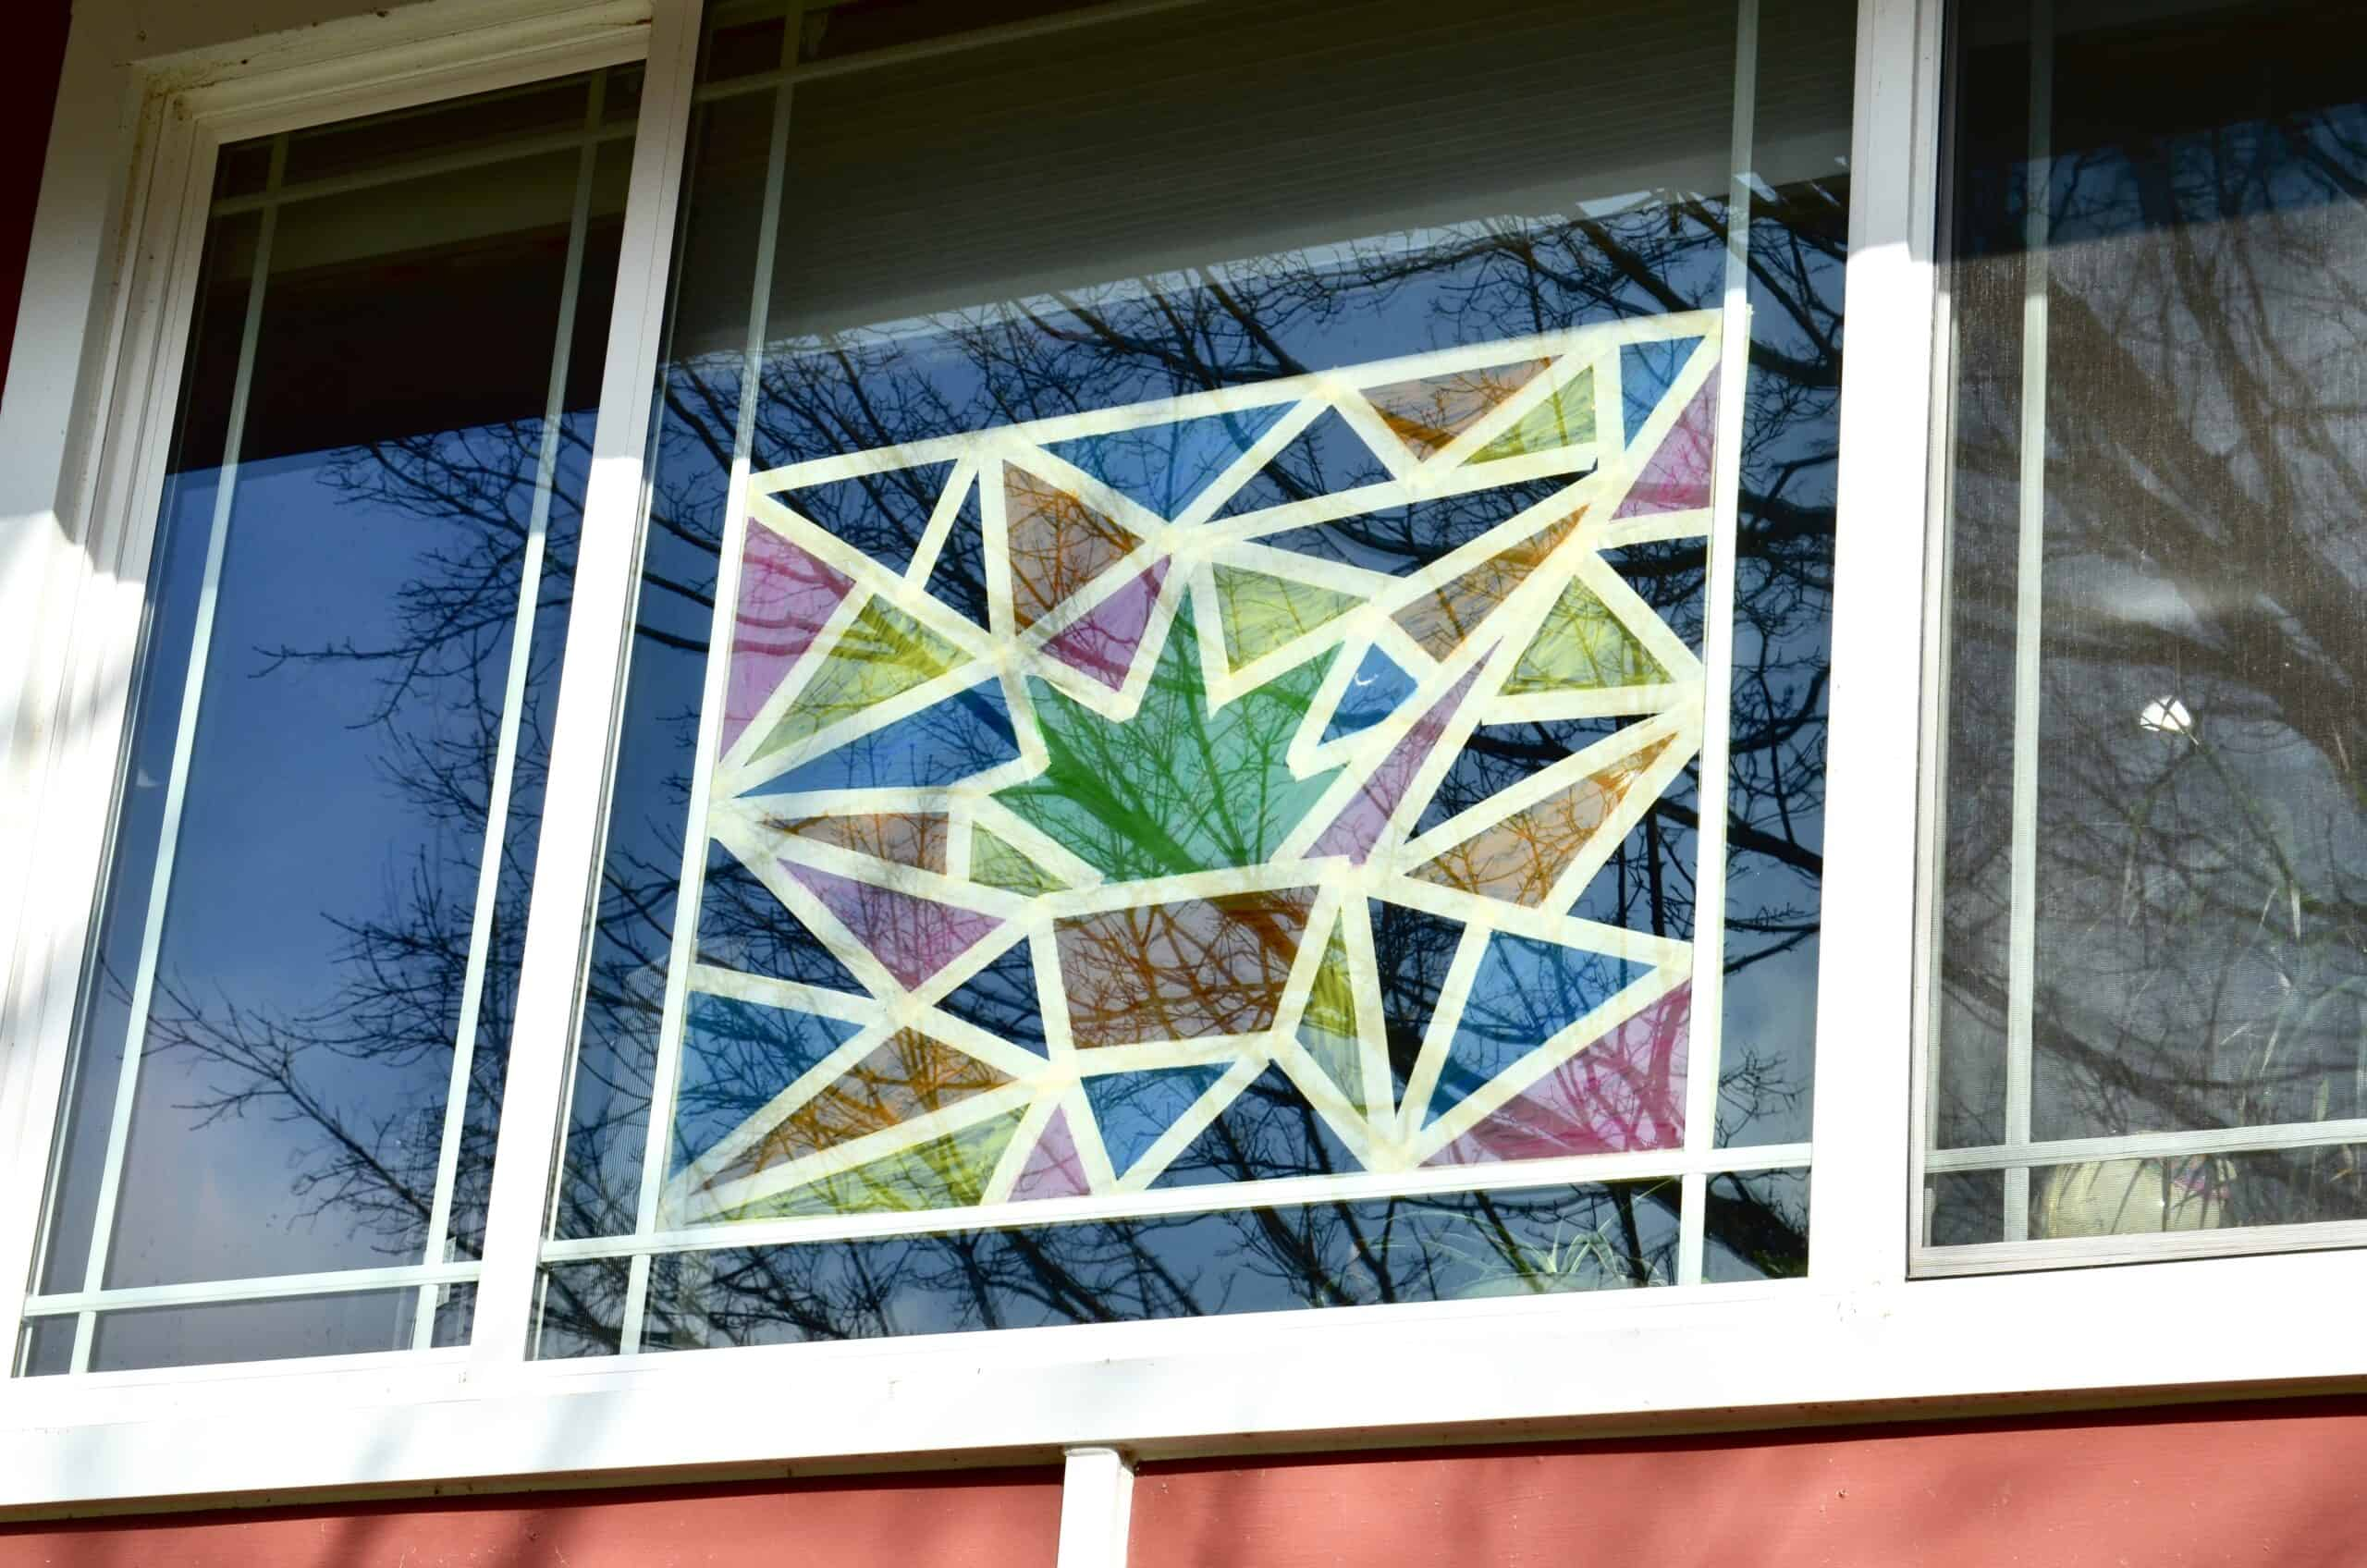 How To Paint Stained Glass Windows At Home Art Activity For Kids